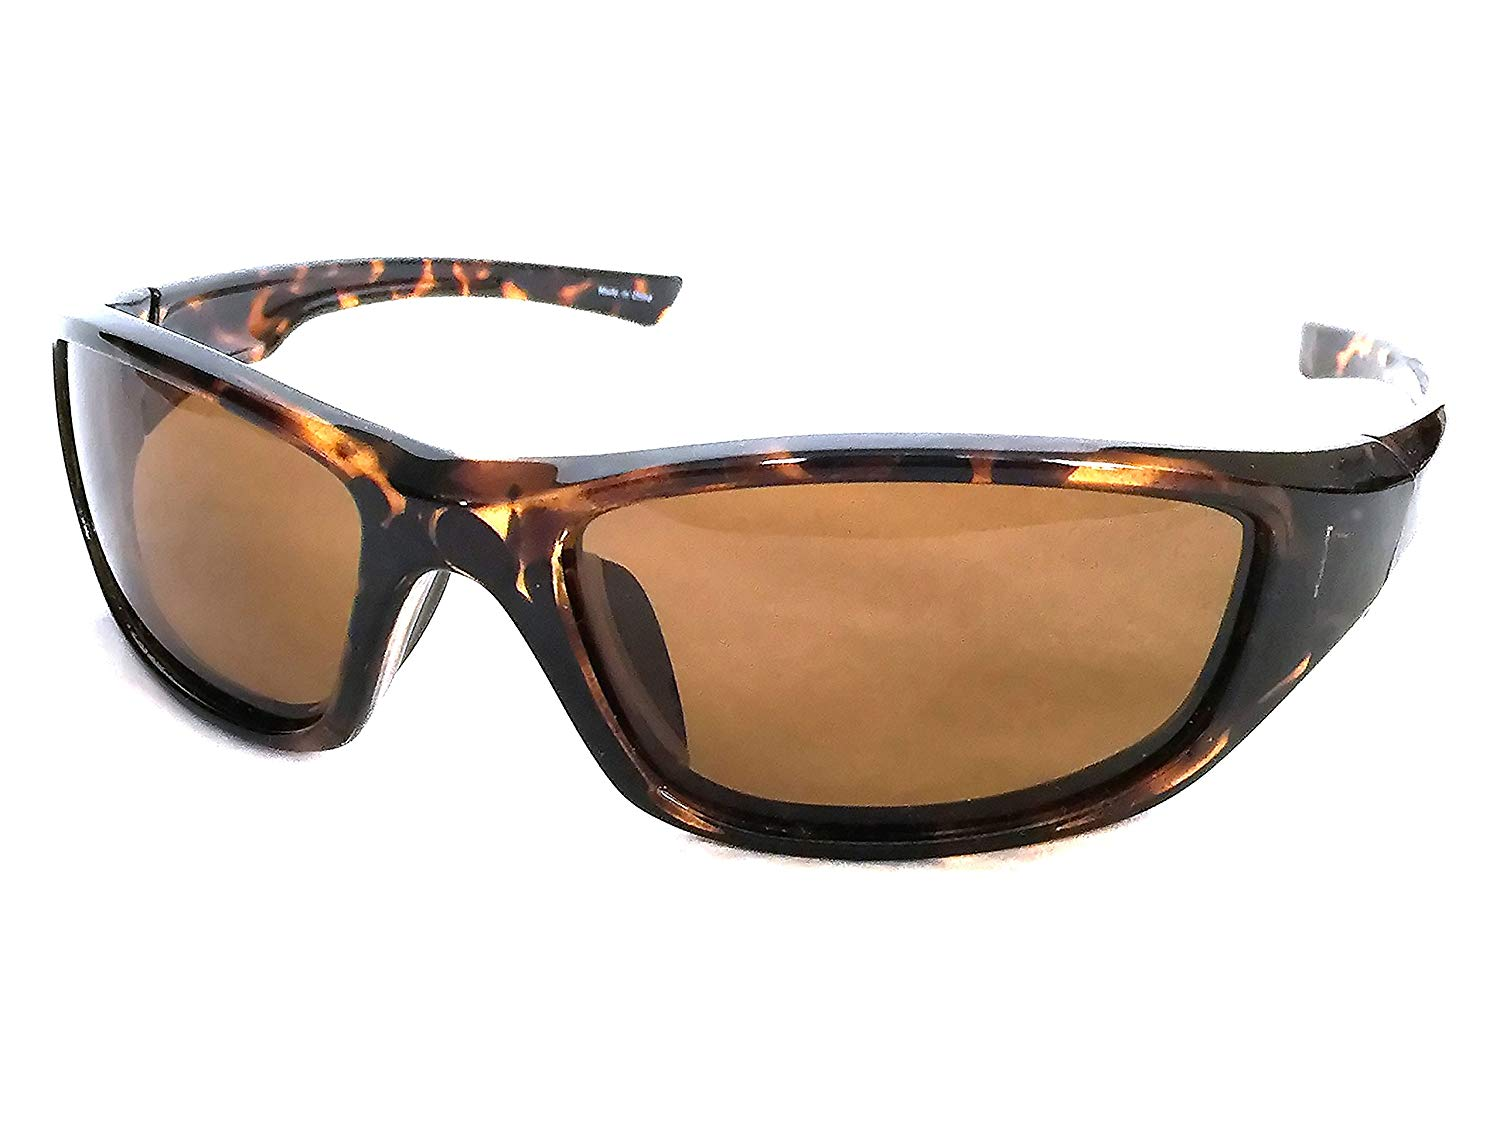 6fee627802e Get Quotations · Strike King Polarized Sunglasses With Advanced Polarization  Technology. Comfortable